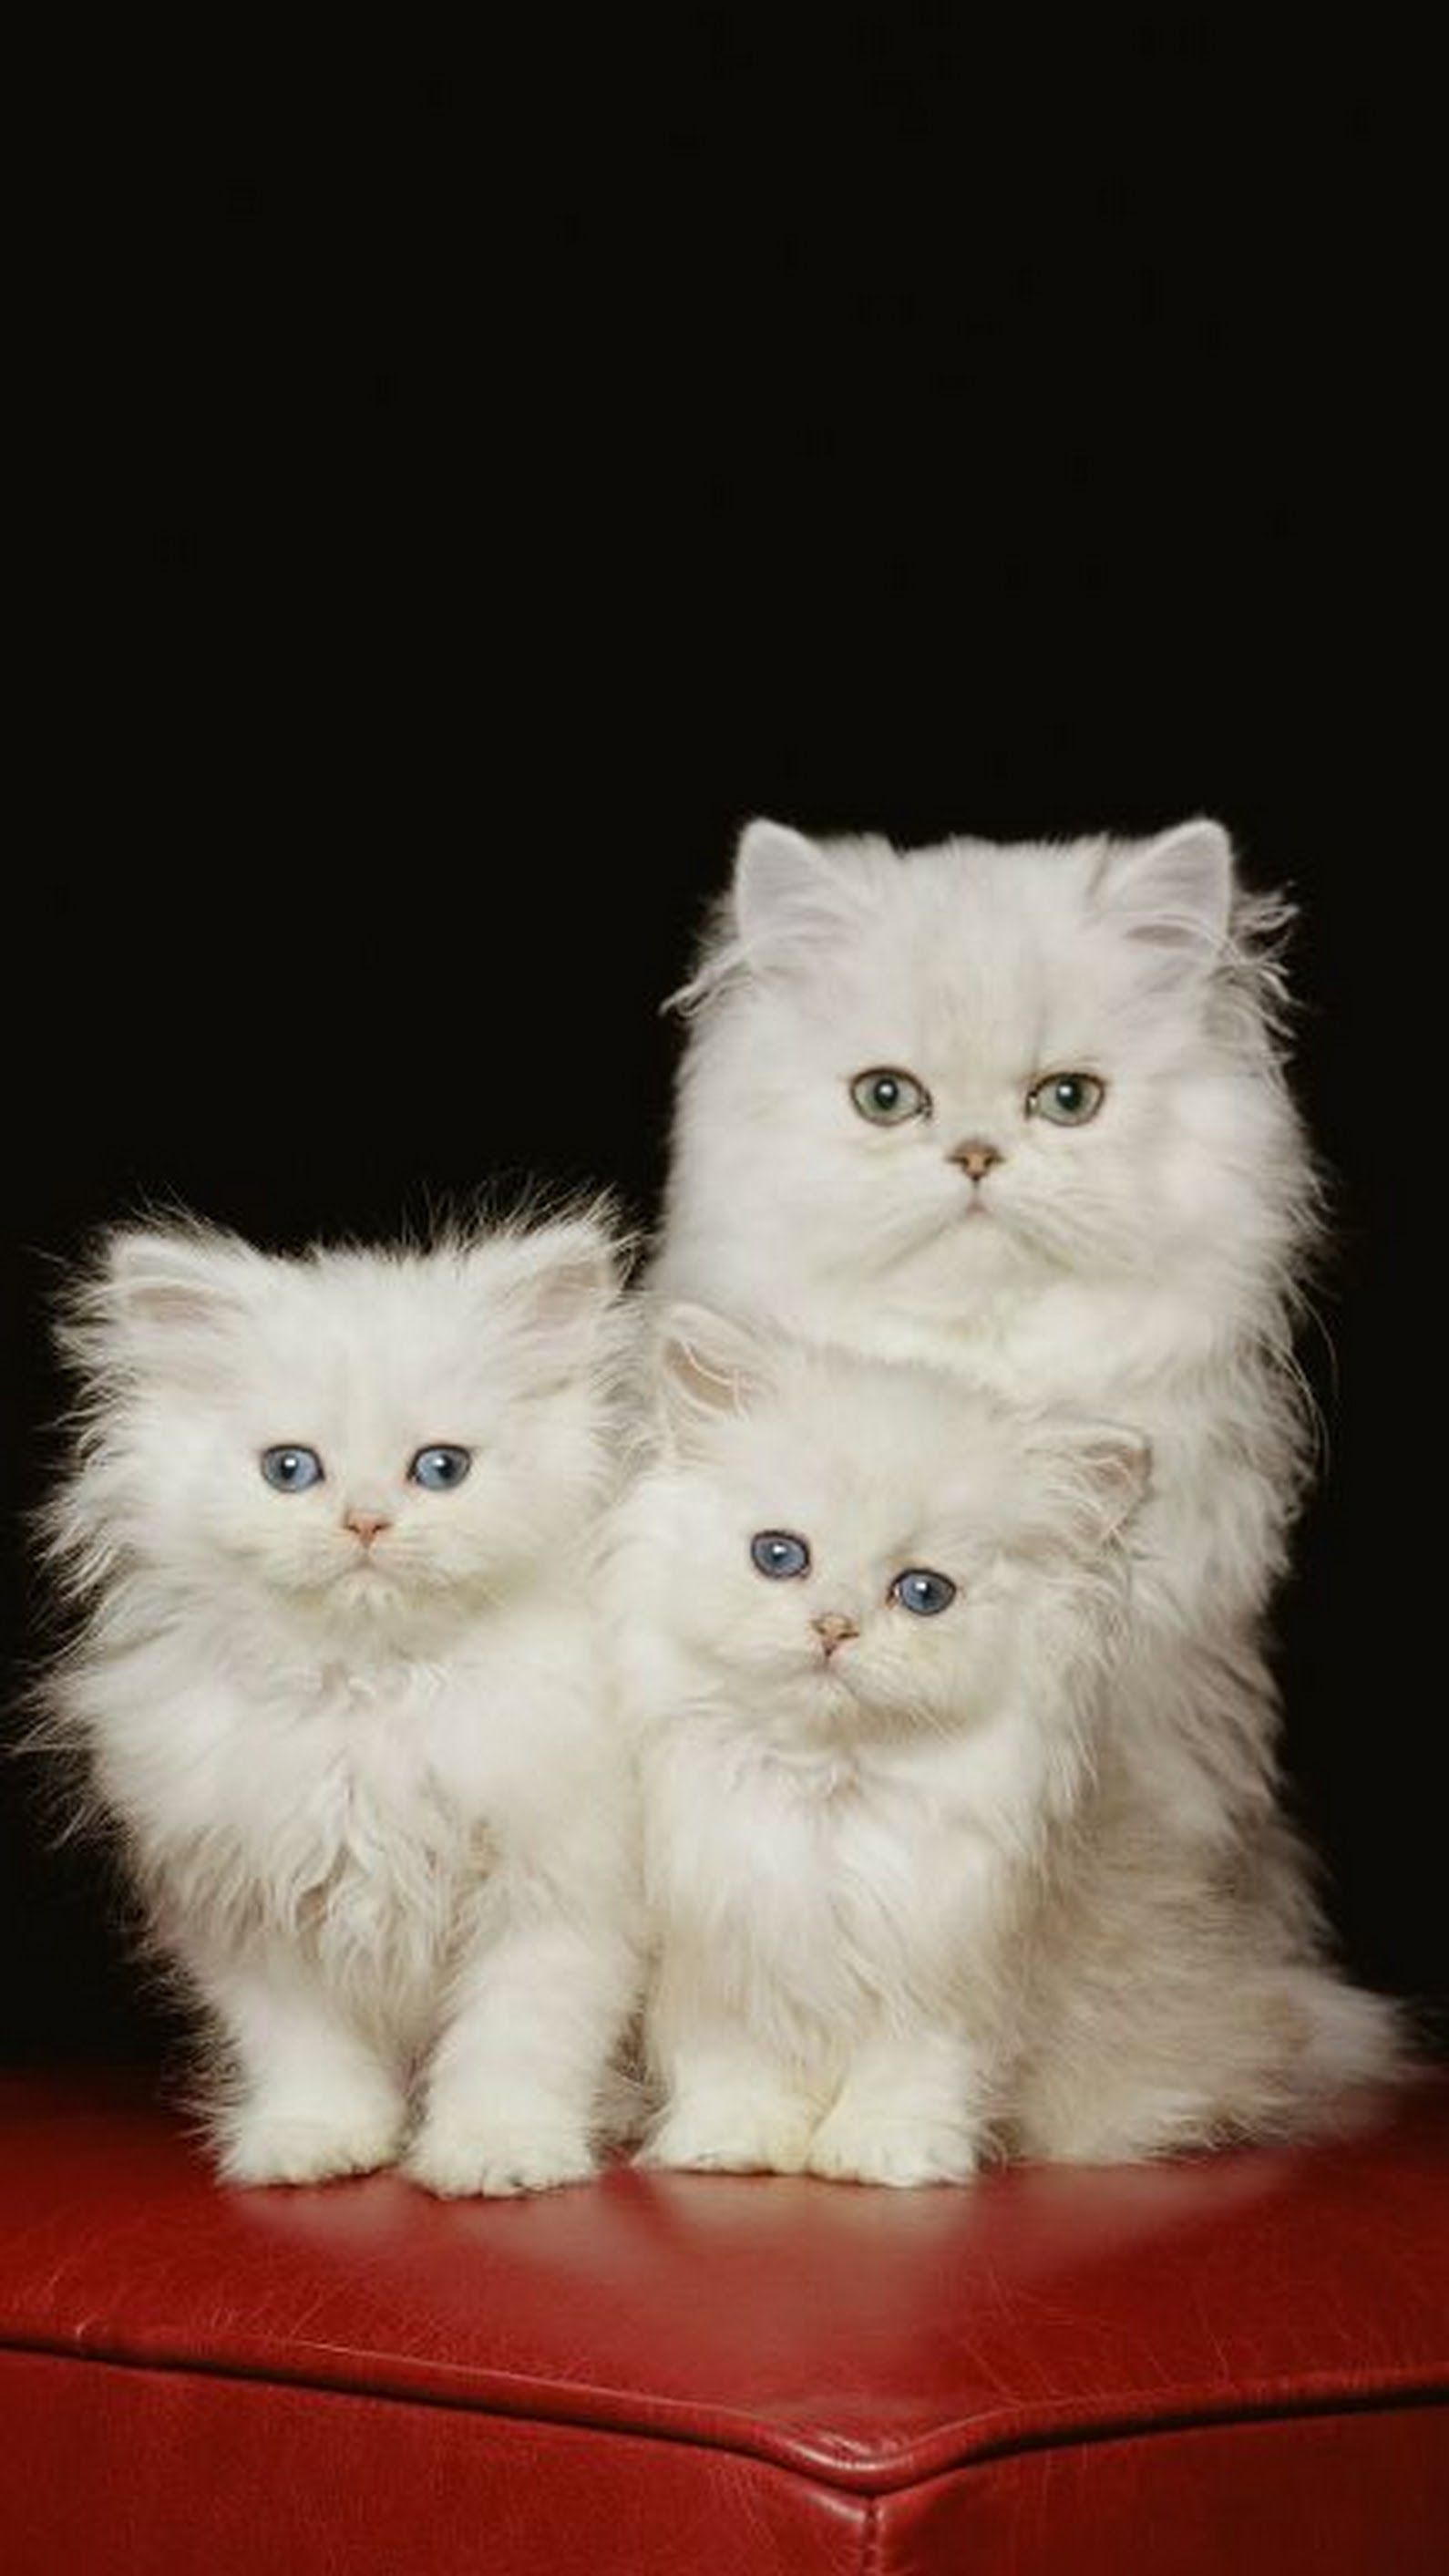 How Can You Do A Persian Cat Adoption? Cats and kittens